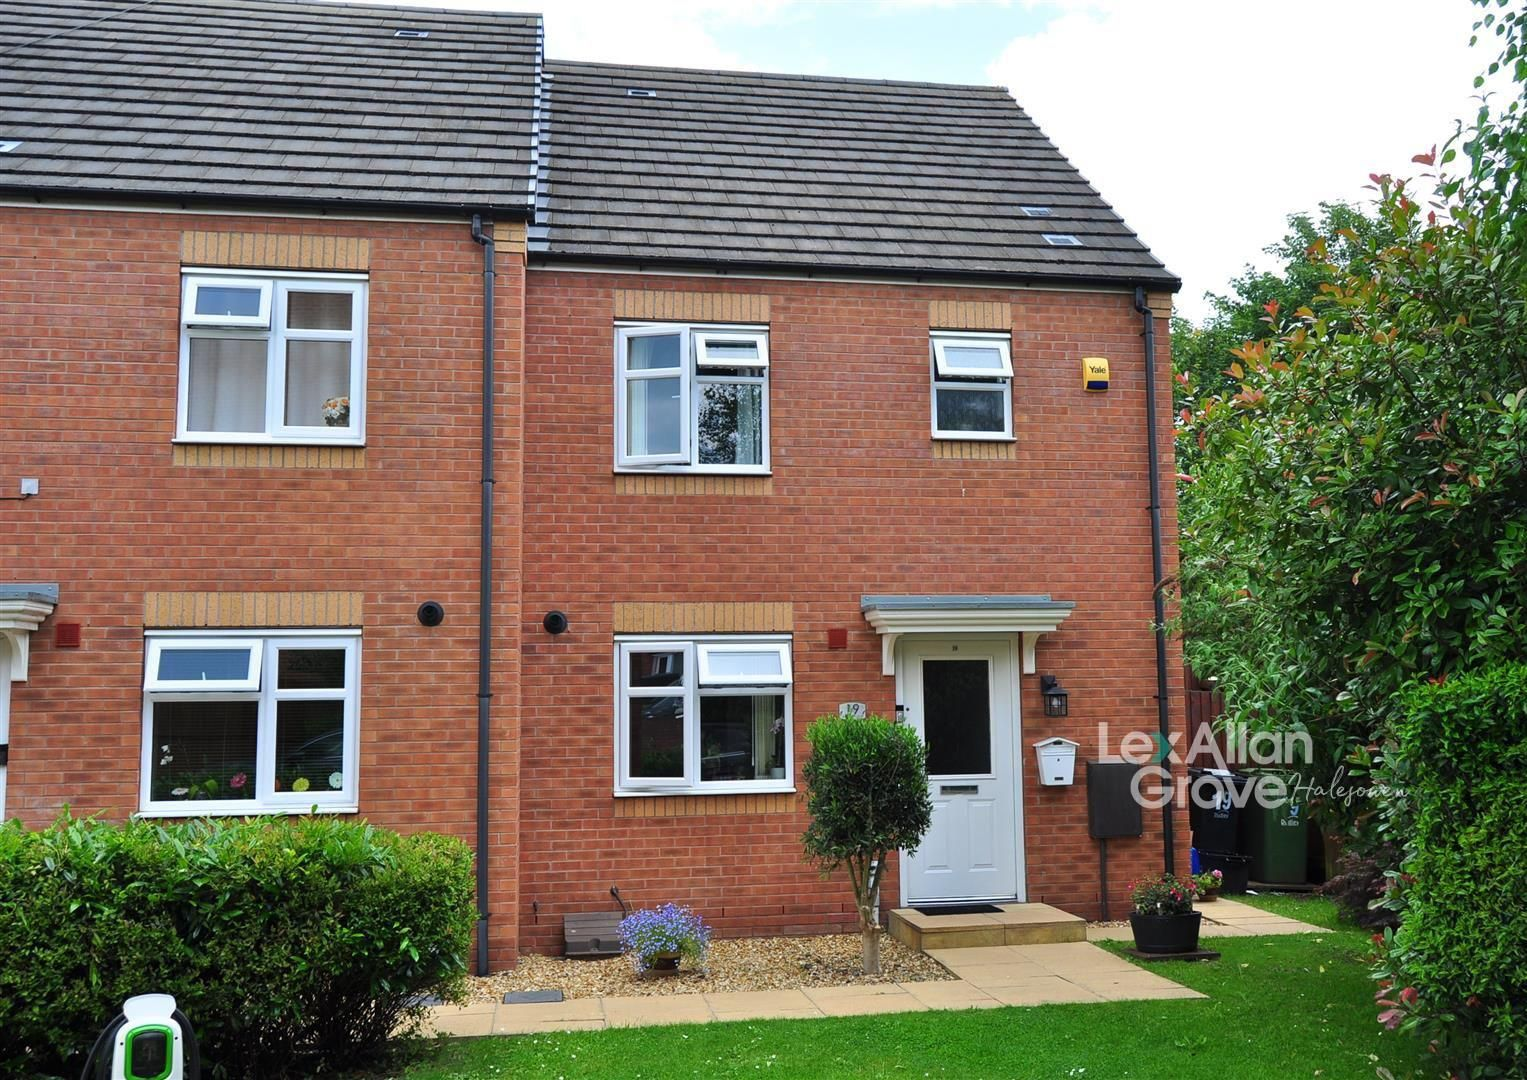 3 bed end-of-terrace for sale, B63